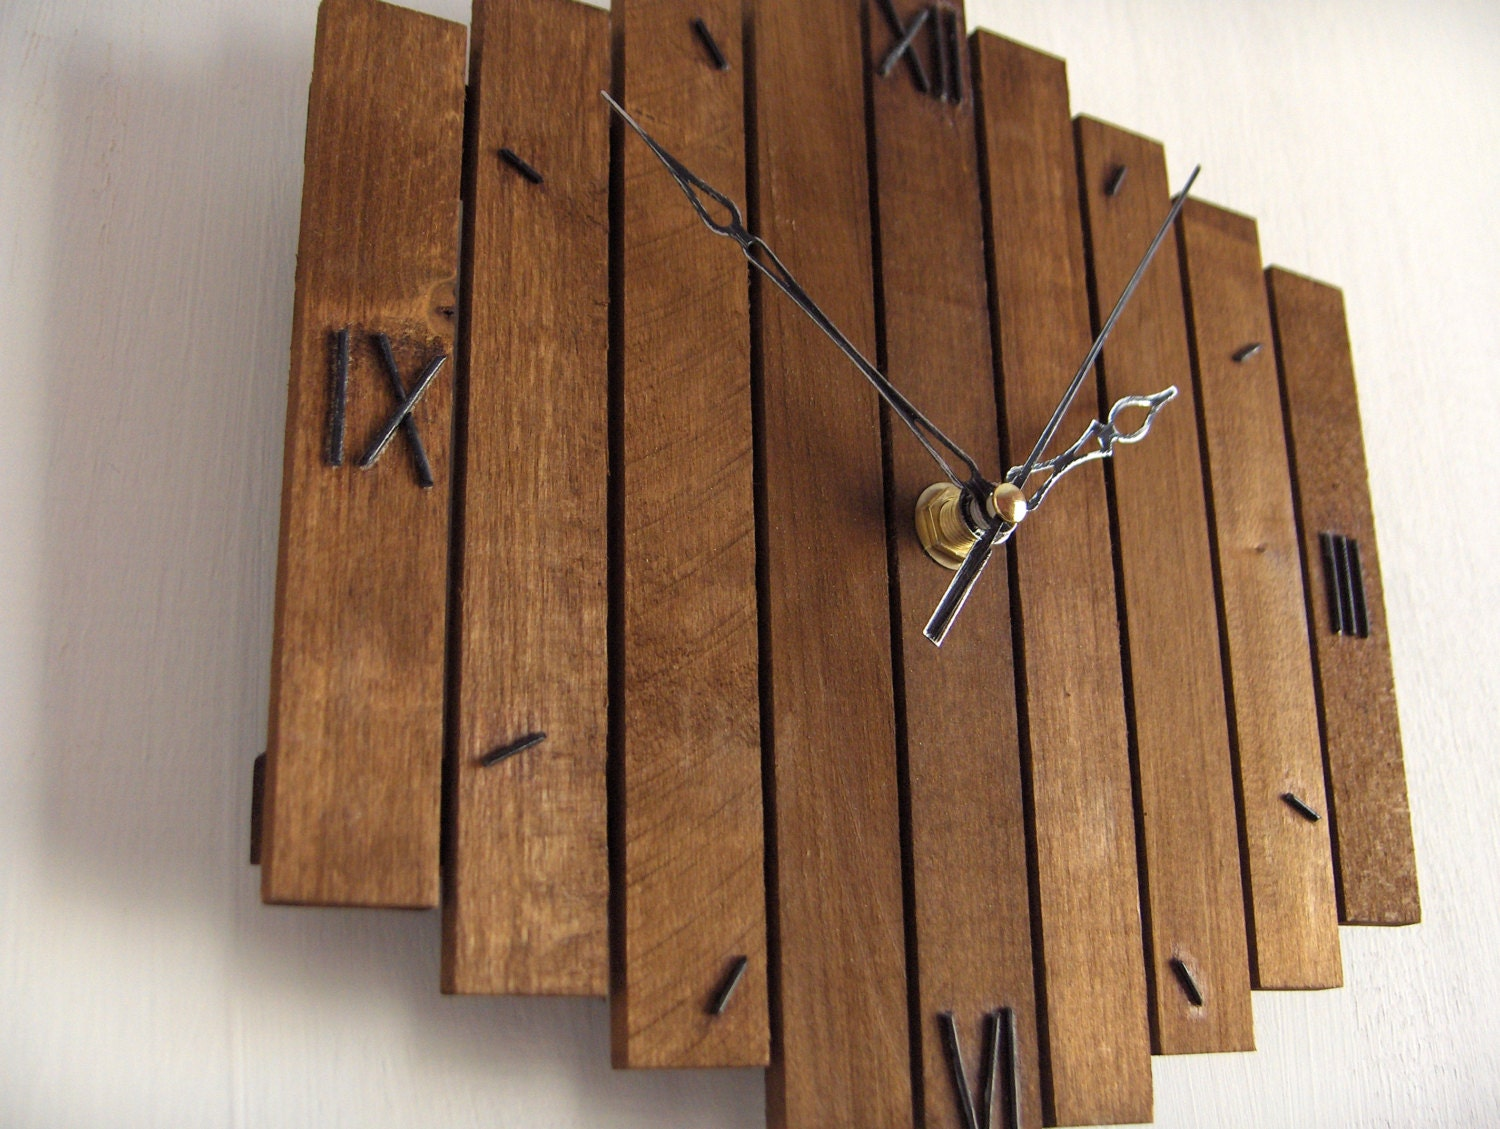 Wall Decor Made From Wood : Wooden wall clock roman decor hanging old